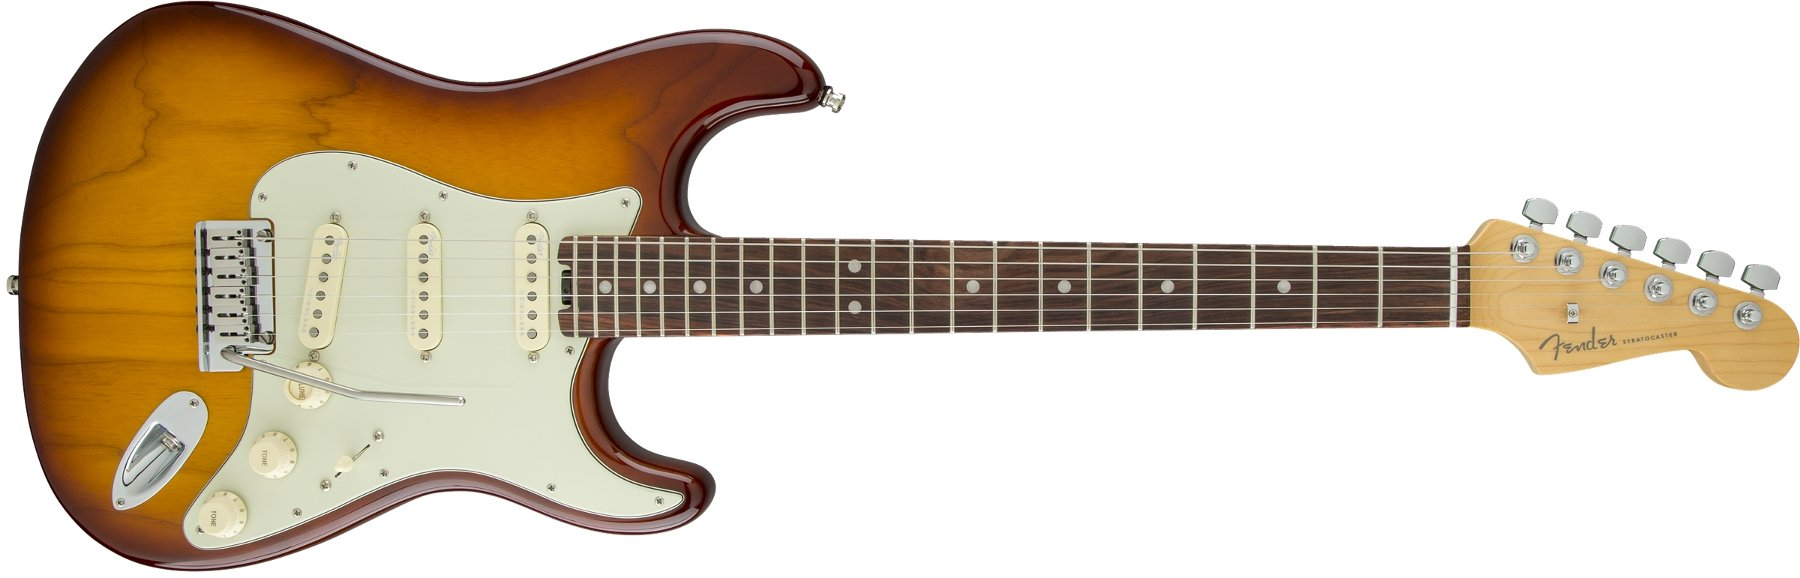 Electric Guitar, 22-Fret, Ash Body with Rosewood Fingerboard